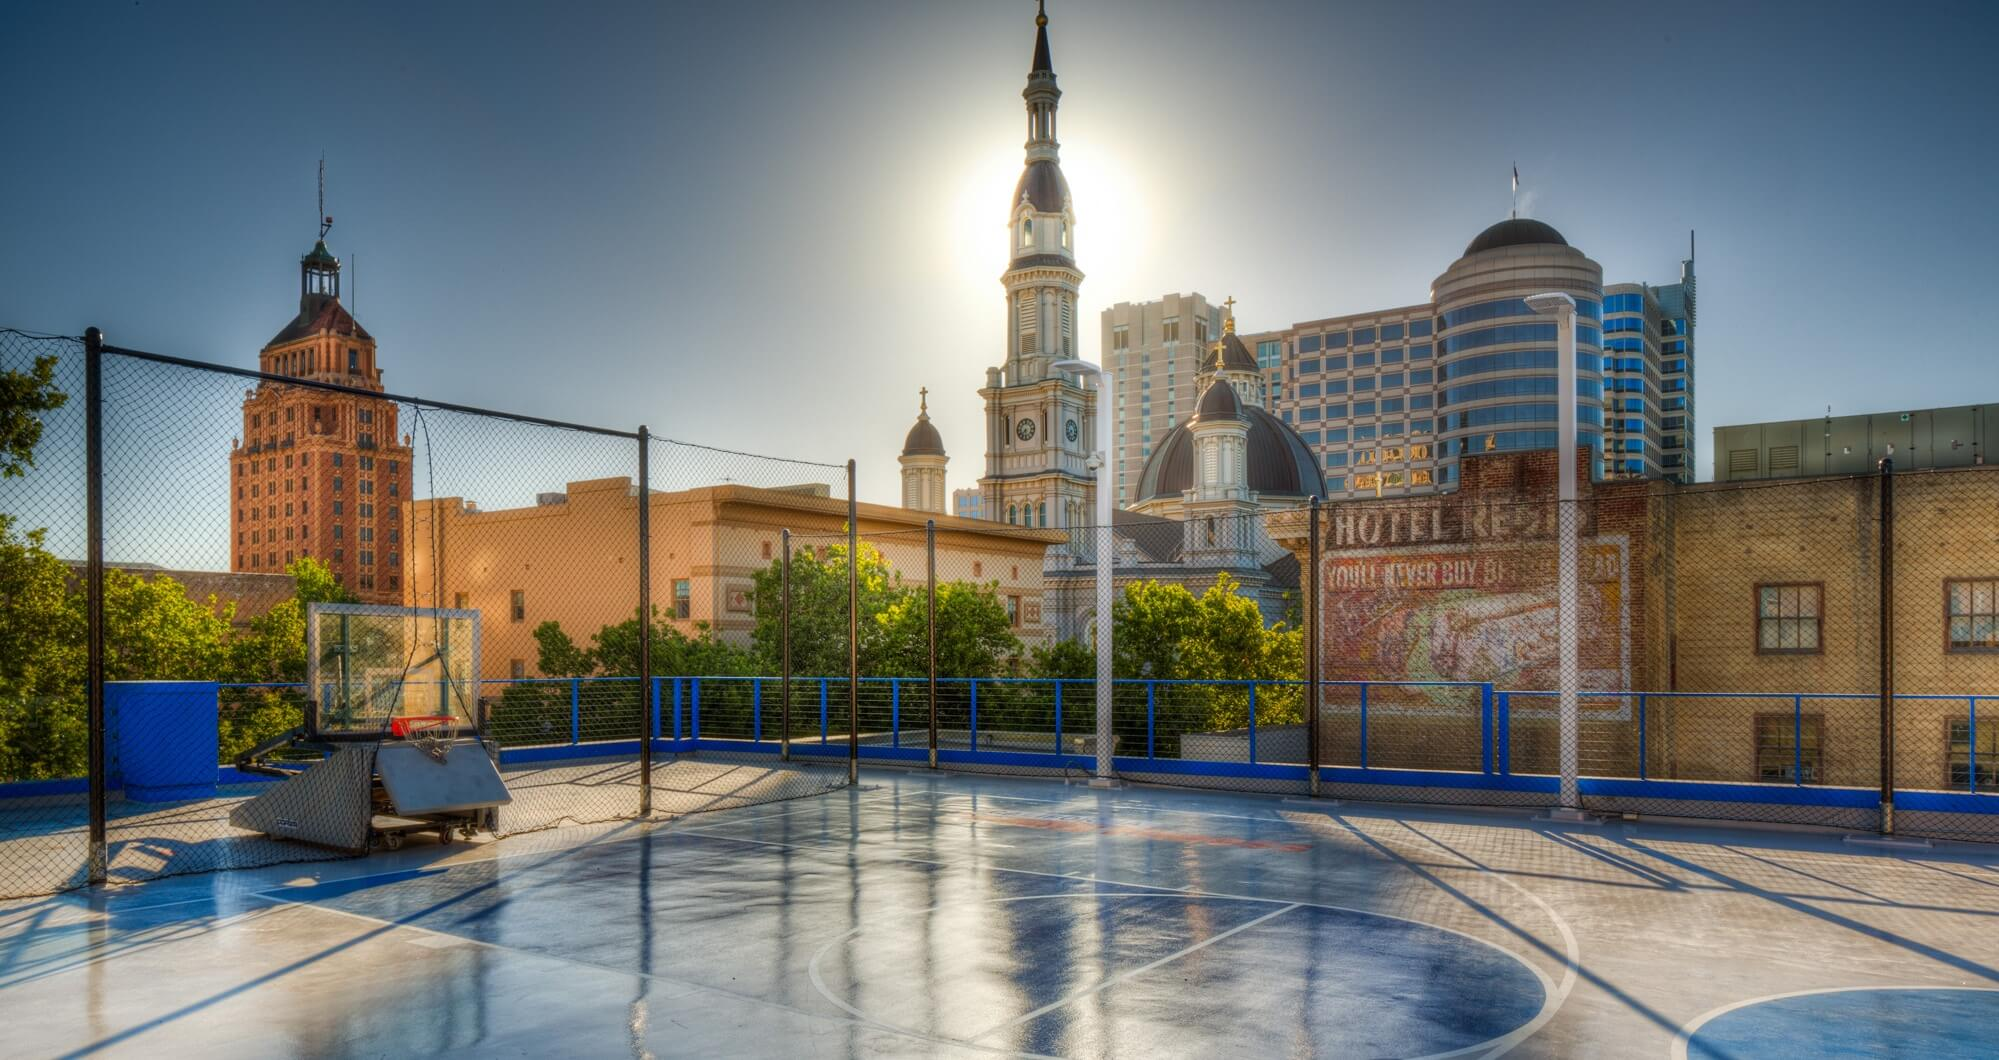 cal fit downtown sacramento gym rooftop basketball court